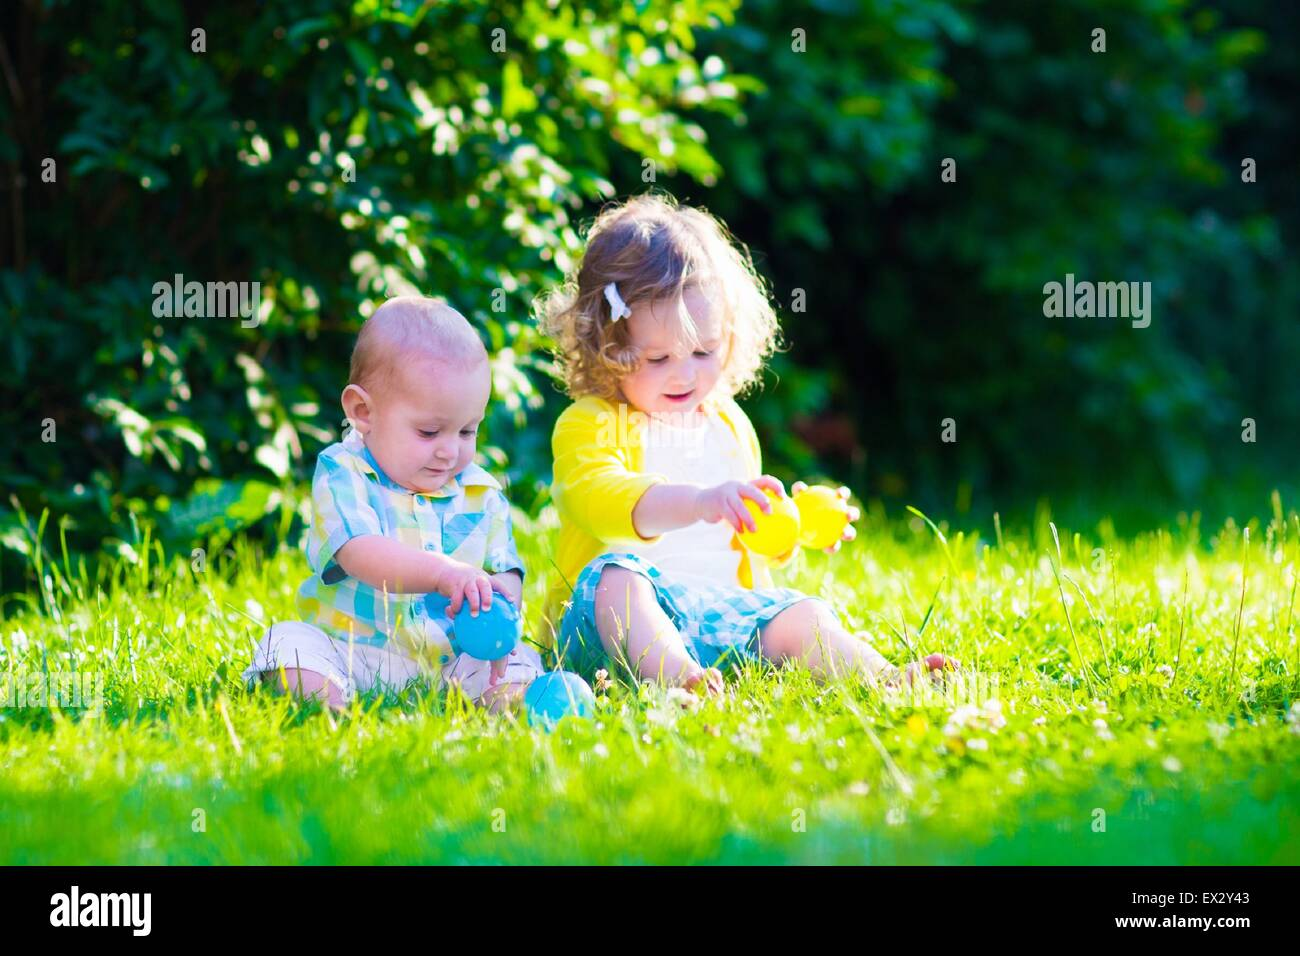 Cute Little Baby Boy Hd Wallpaper Children Playing In The Garden Toddler Kid And Little